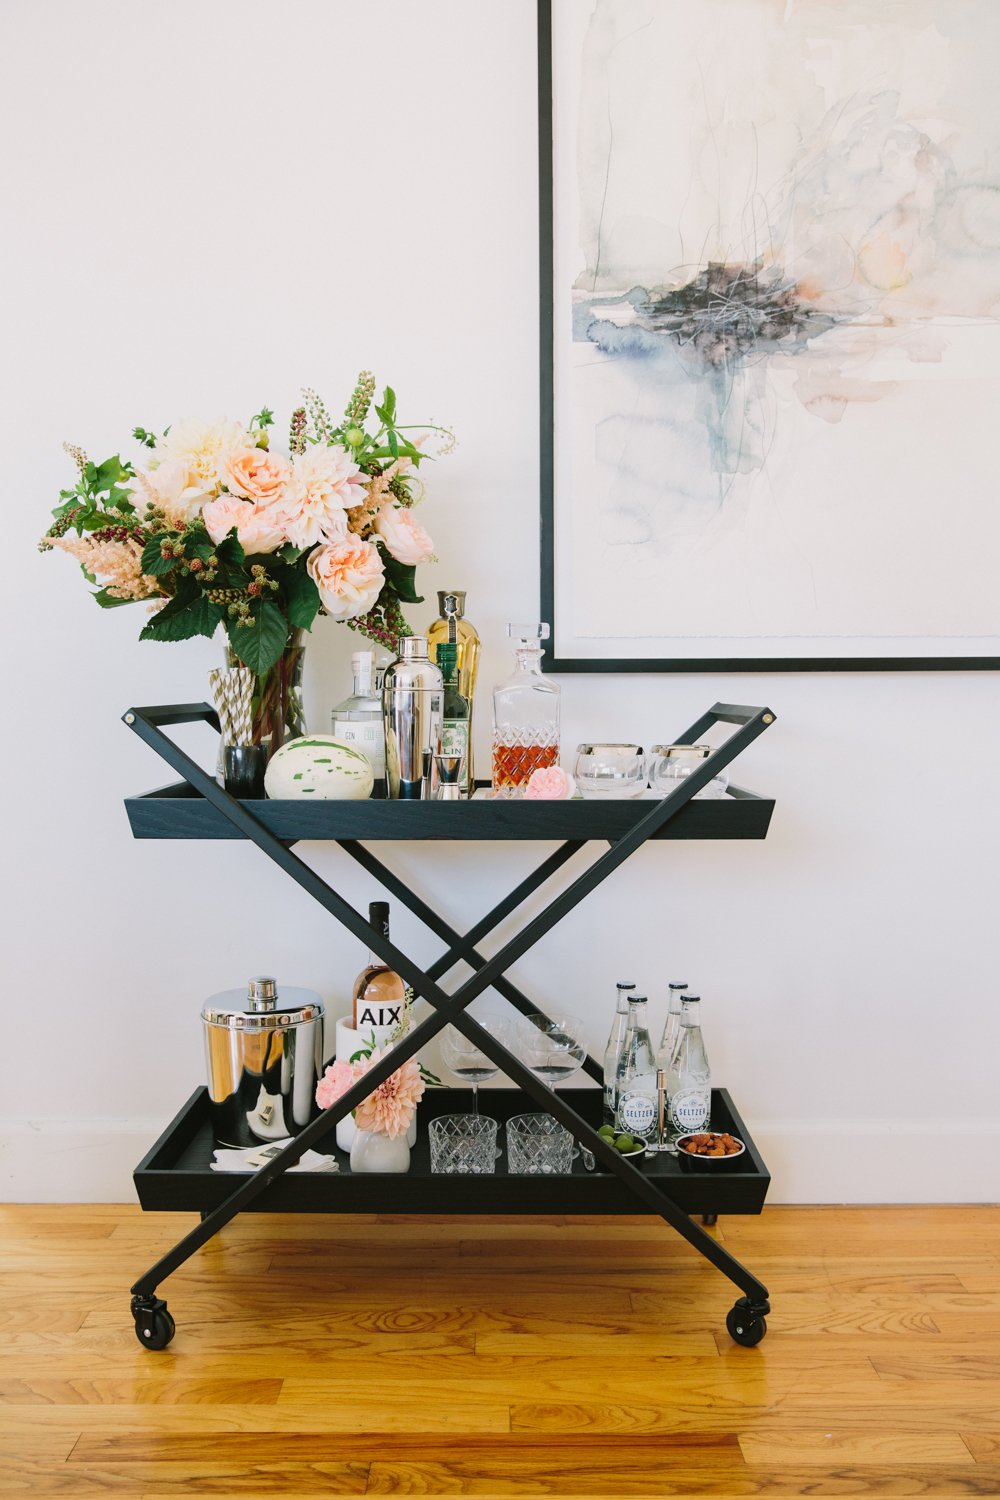 Stocked and decorated black barcart on casters in front of a hanging wall painting